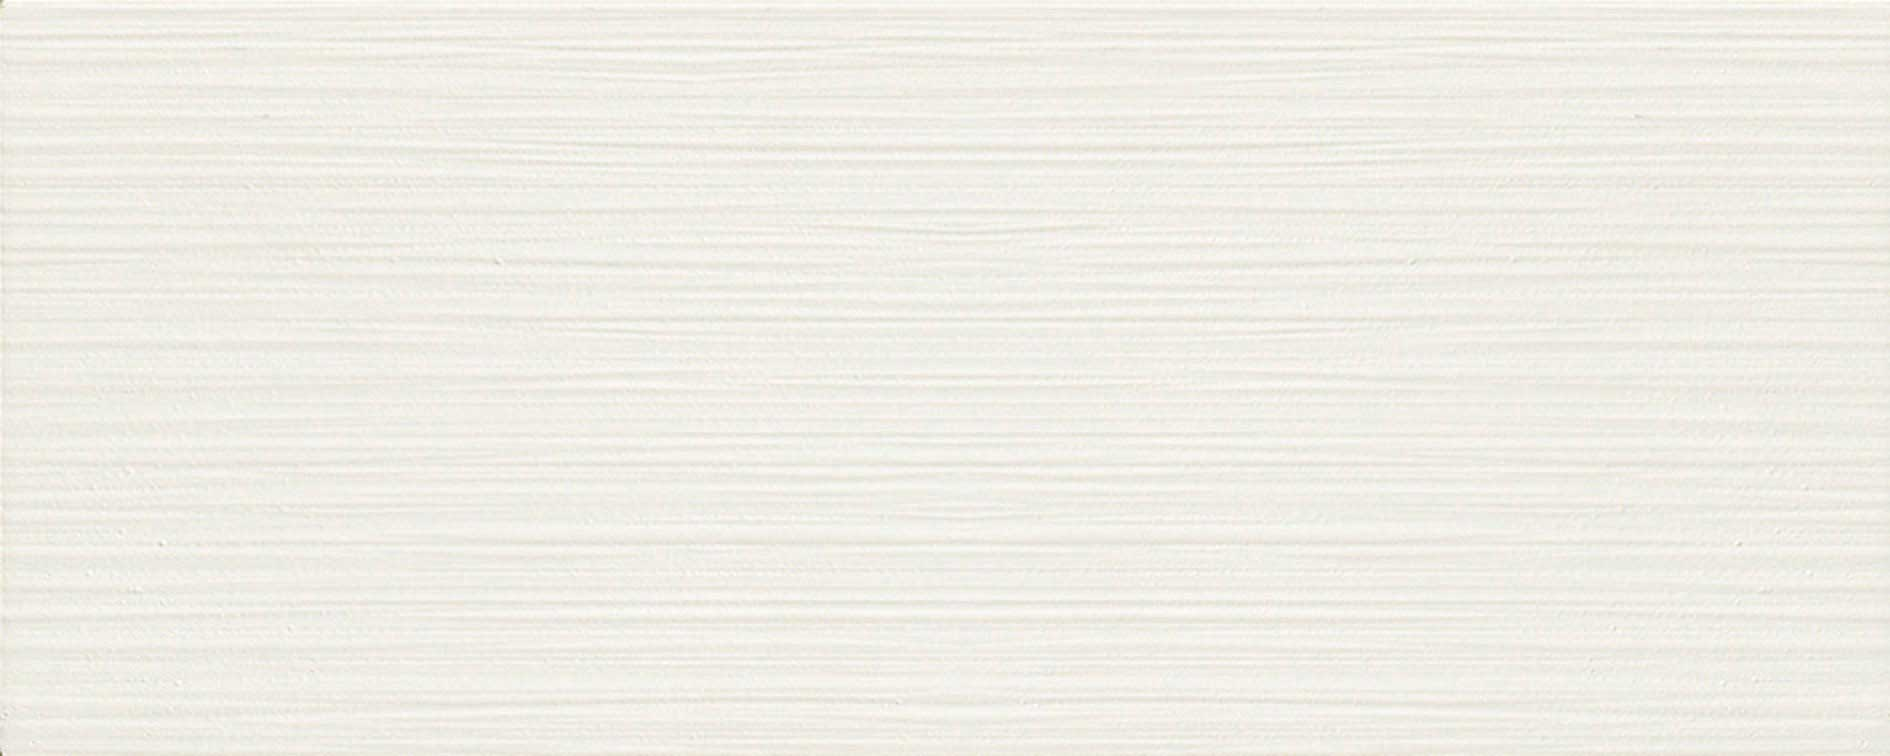 Light collection nemo tile stone light ceramic wall tile white silk dailygadgetfo Image collections